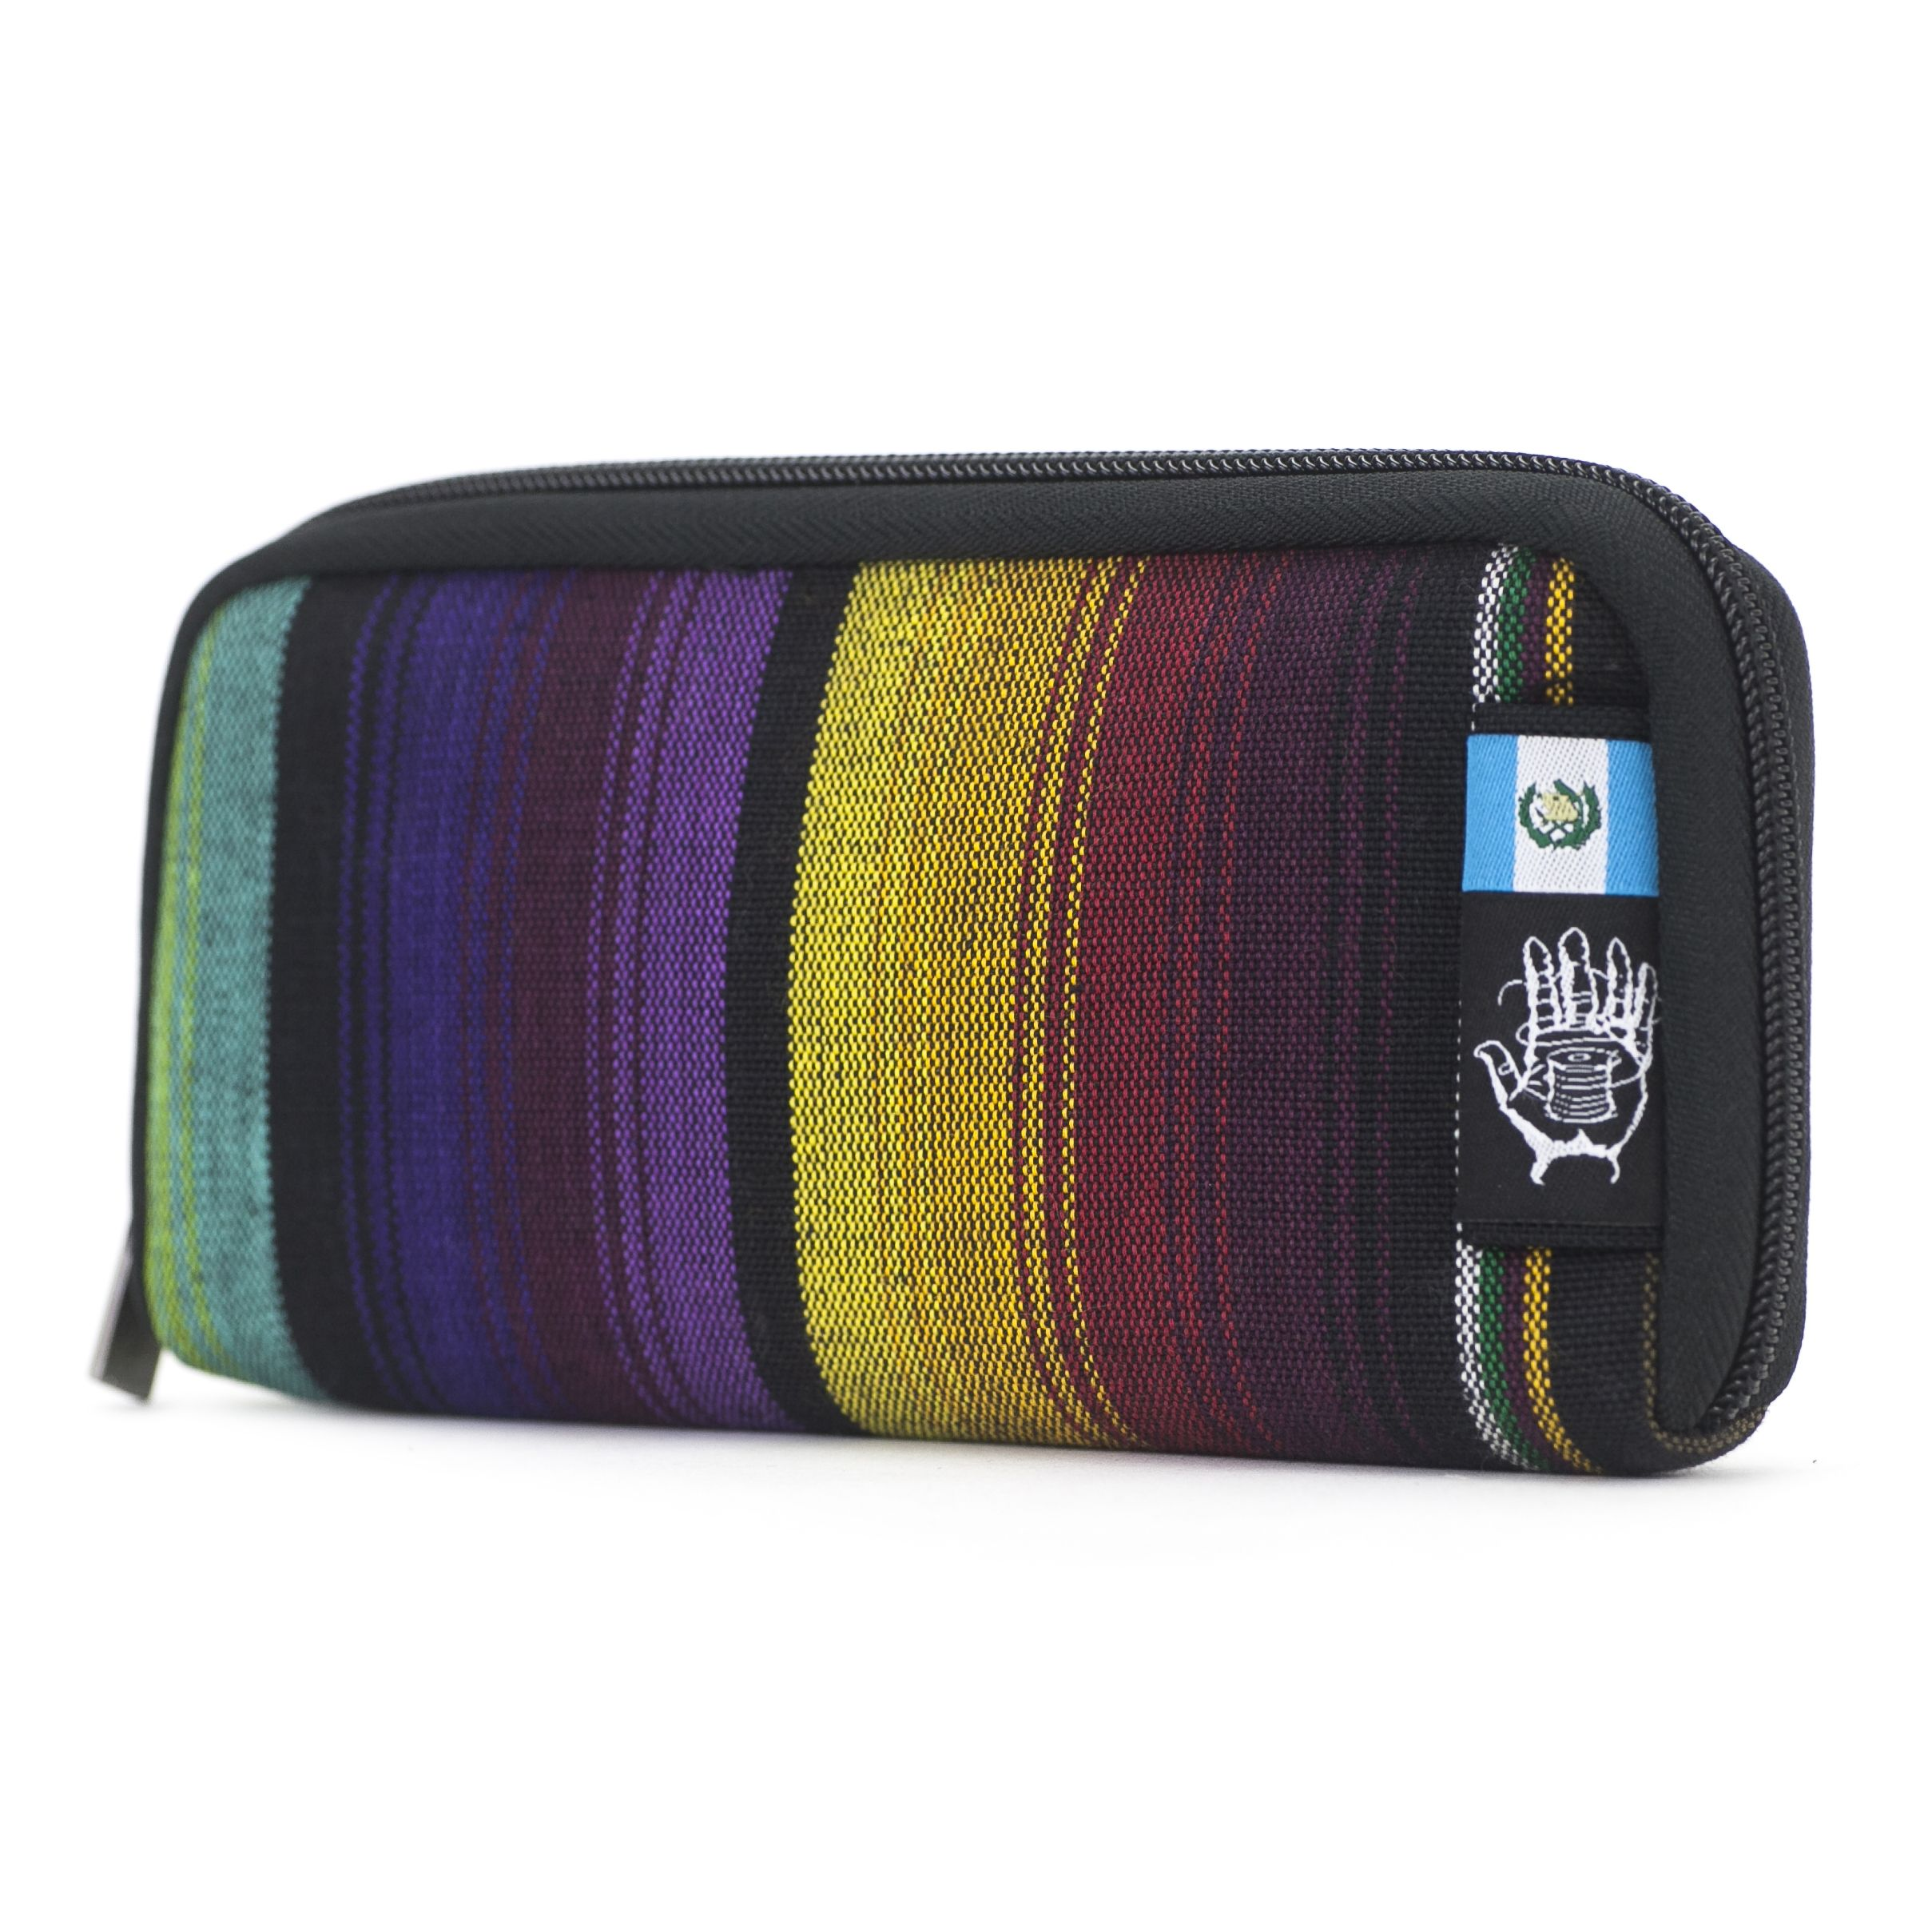 Chiburi Accordion Wallet RFID Block Guatemala 1